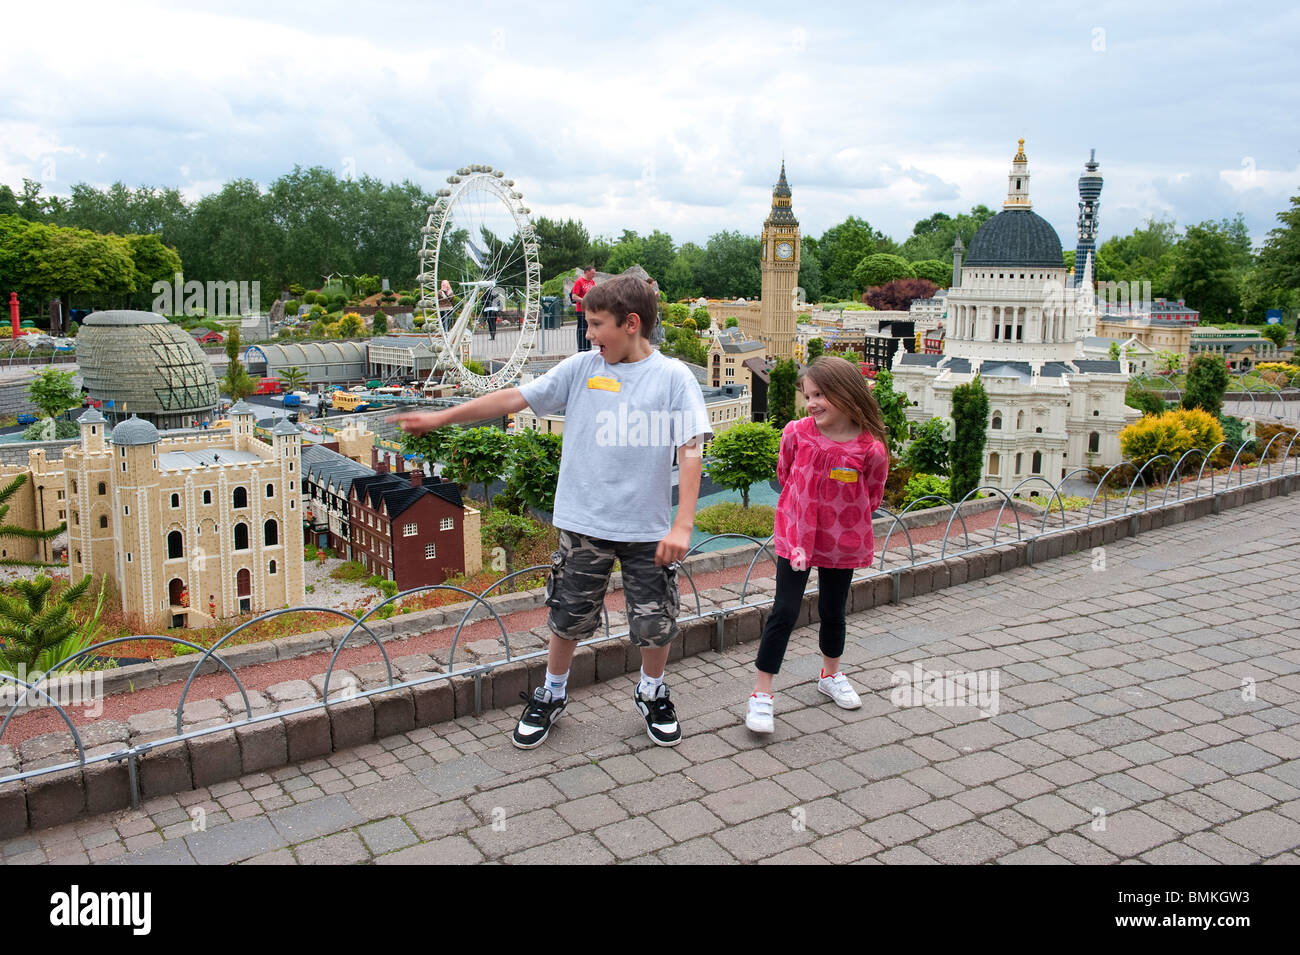 Children at Miniland, Legoland, Windsor, UK Stock Photo